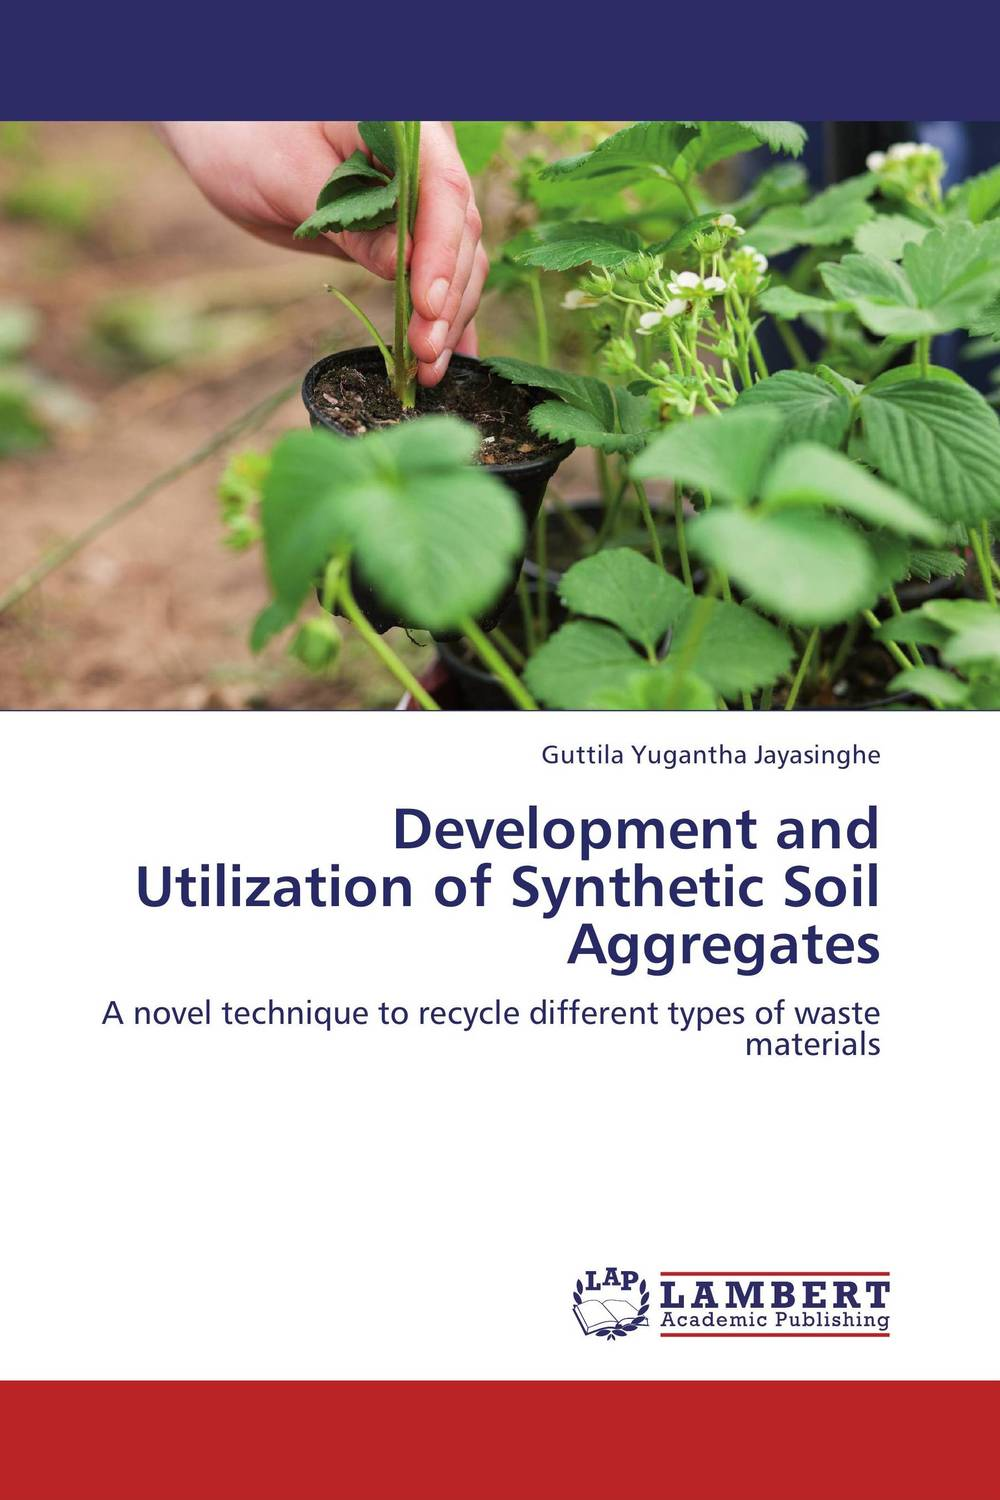 Development and Utilization of Synthetic Soil Aggregates prasanta kumar hota and anil kumar singh synthetic photoresponsive systems